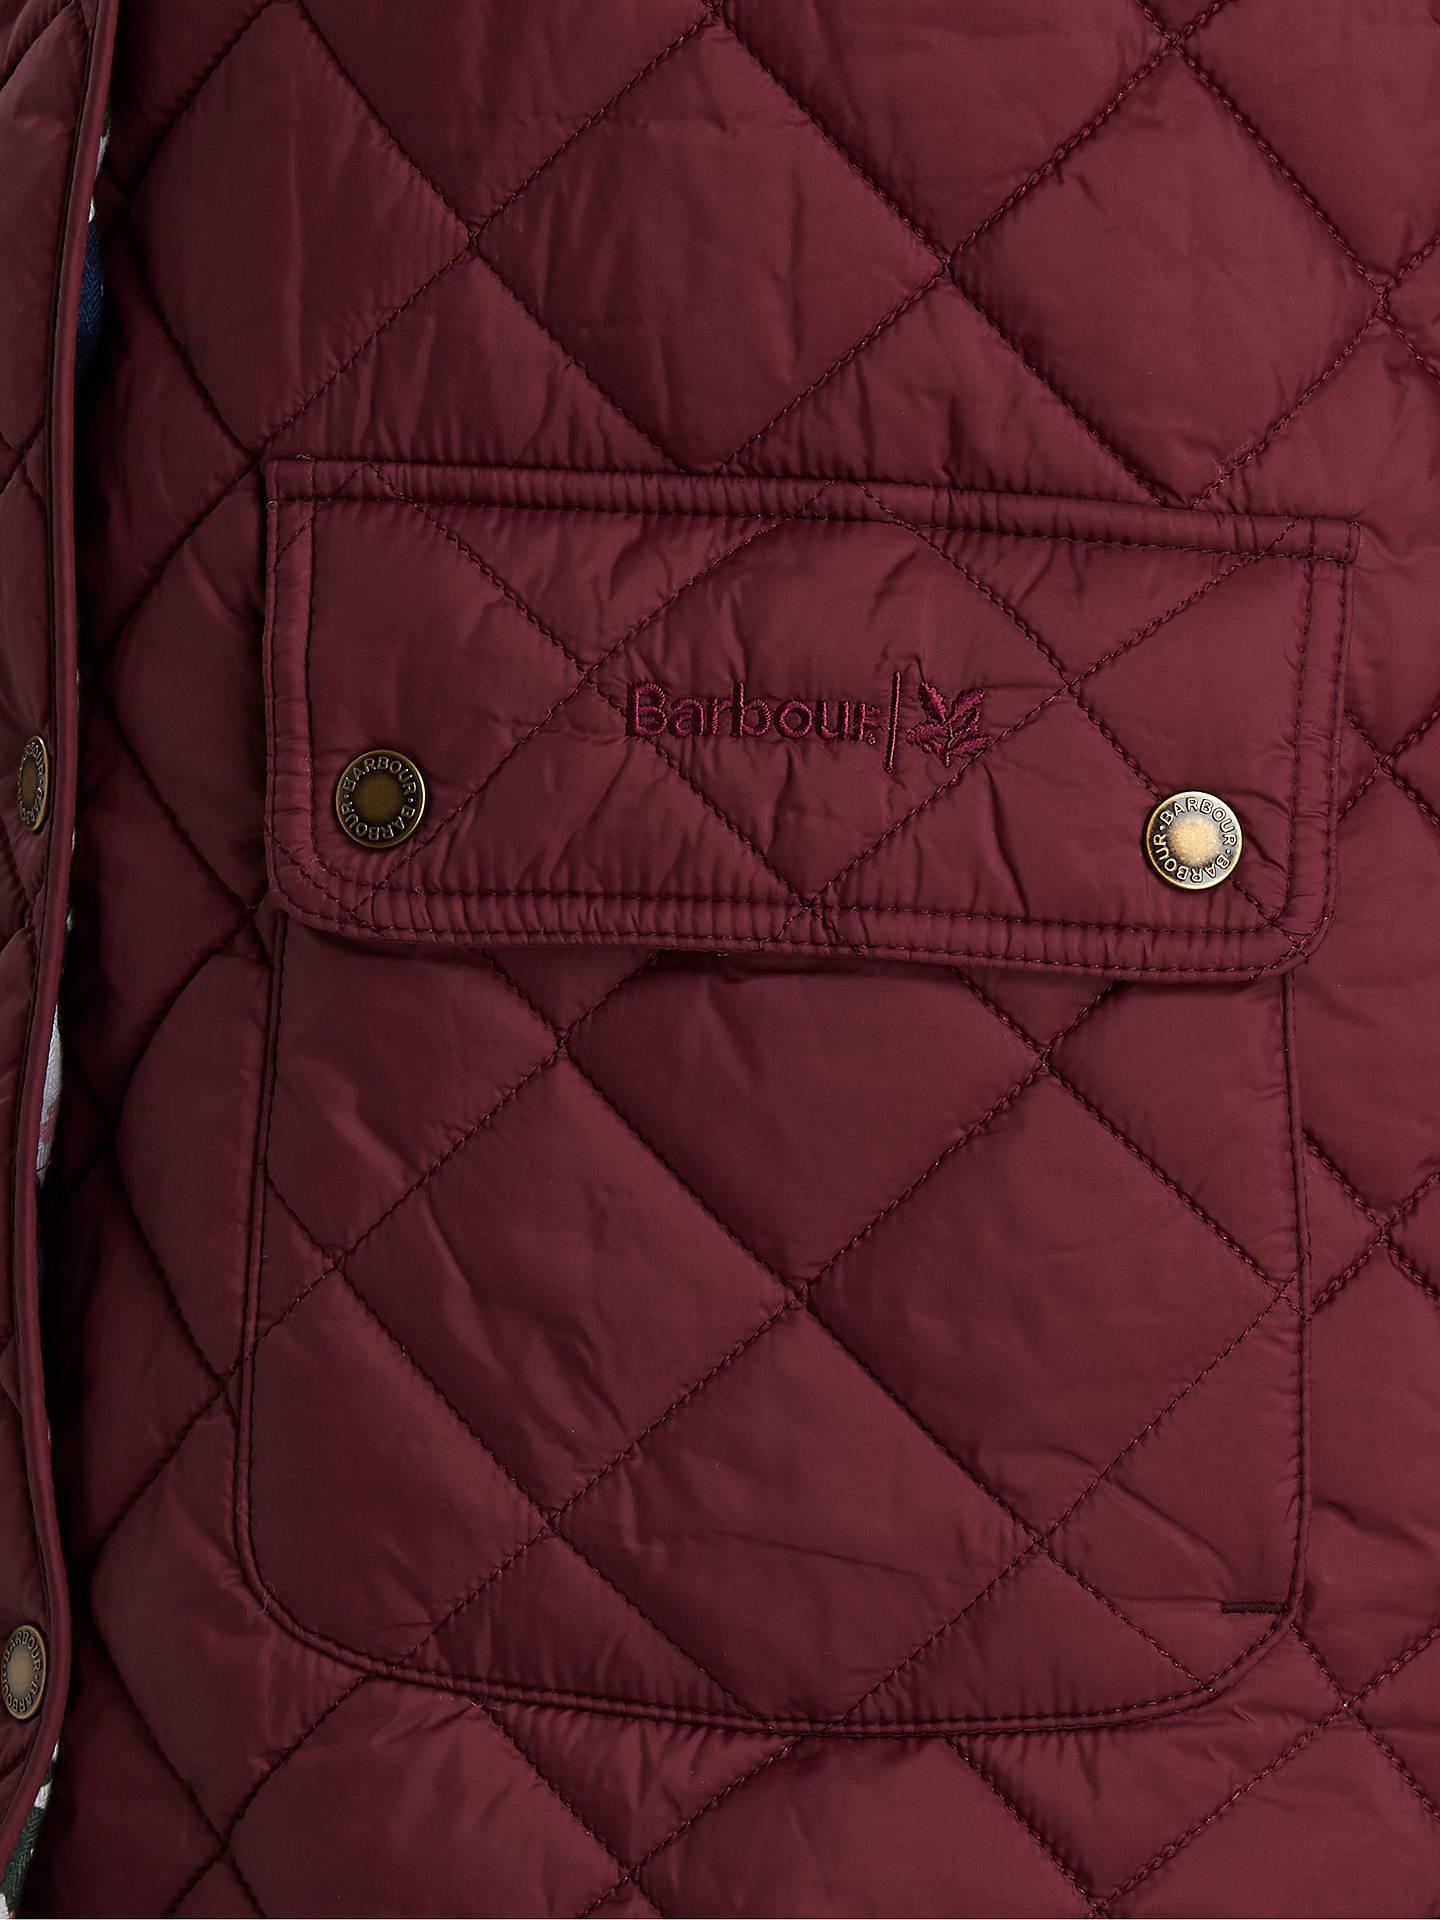 Buy Barbour National Trust Moors Quilted Jacket, Burgundy, 8 Online at johnlewis.com